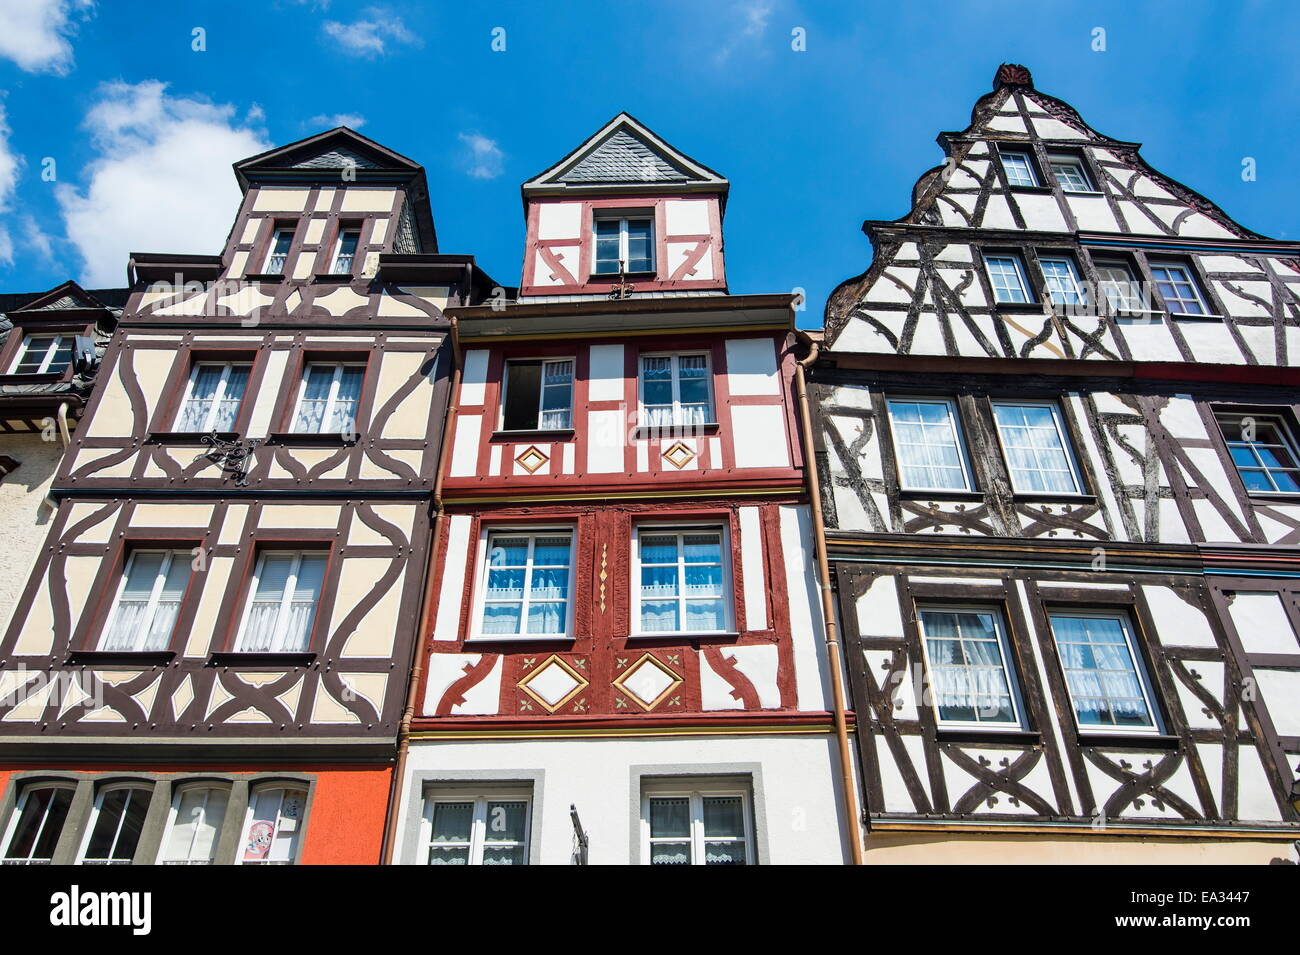 Half timbered houses on the market square in Cochem, Moselle Valley, Rhineland-Palatinate, Germany, Europe - Stock Image